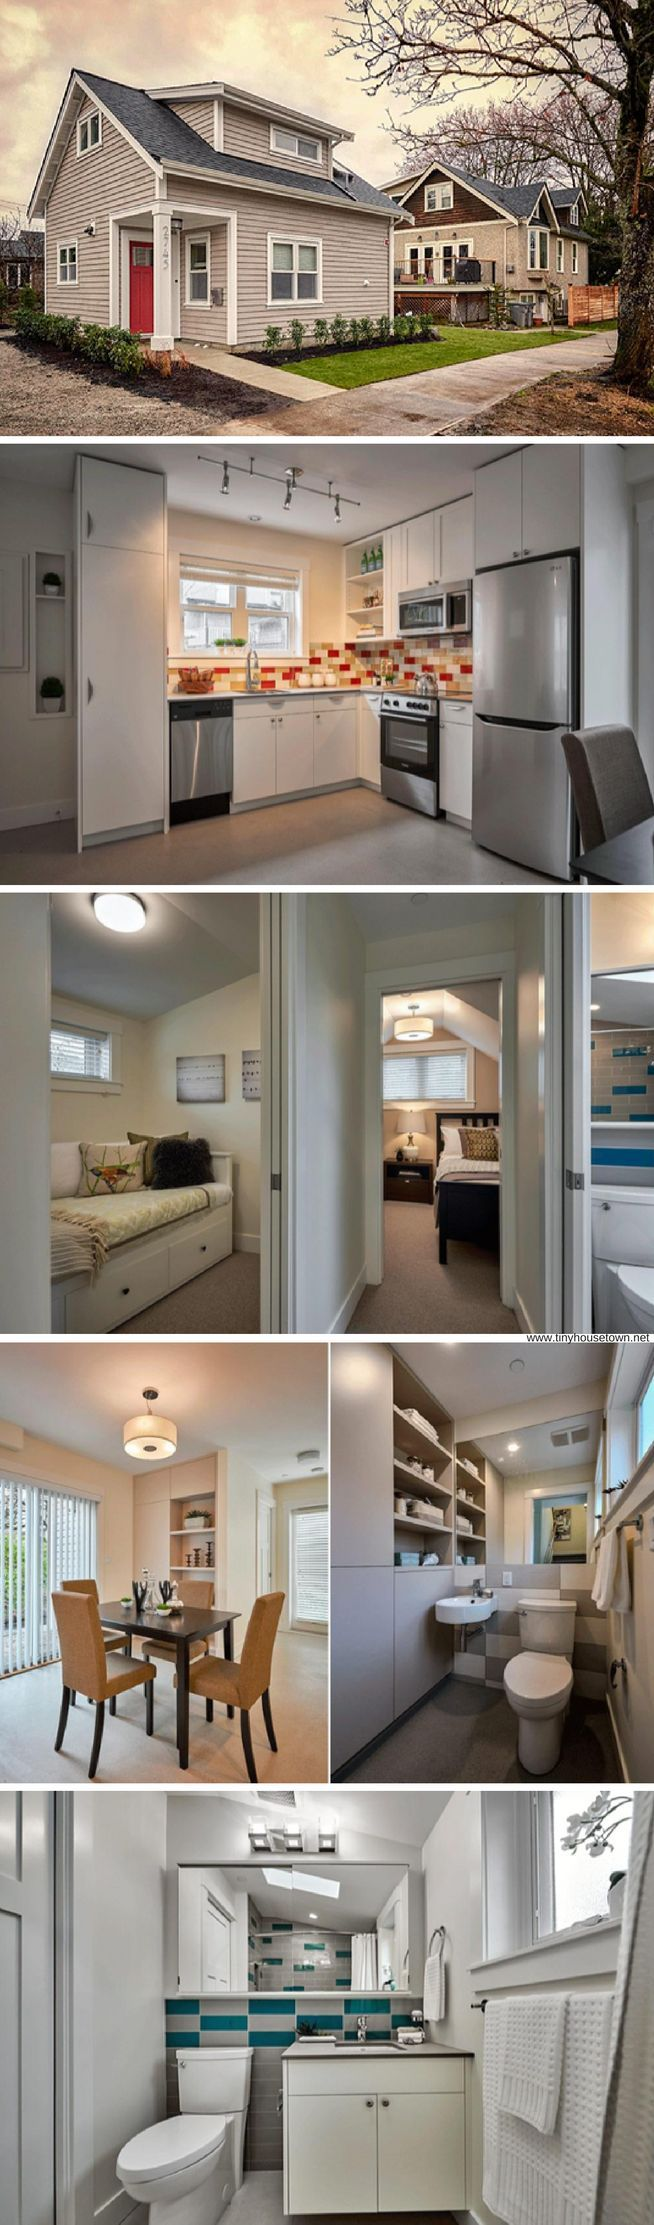 A vancouver laneway house that spans just 670 sq ft - Affordable interior designer orlando fl ...